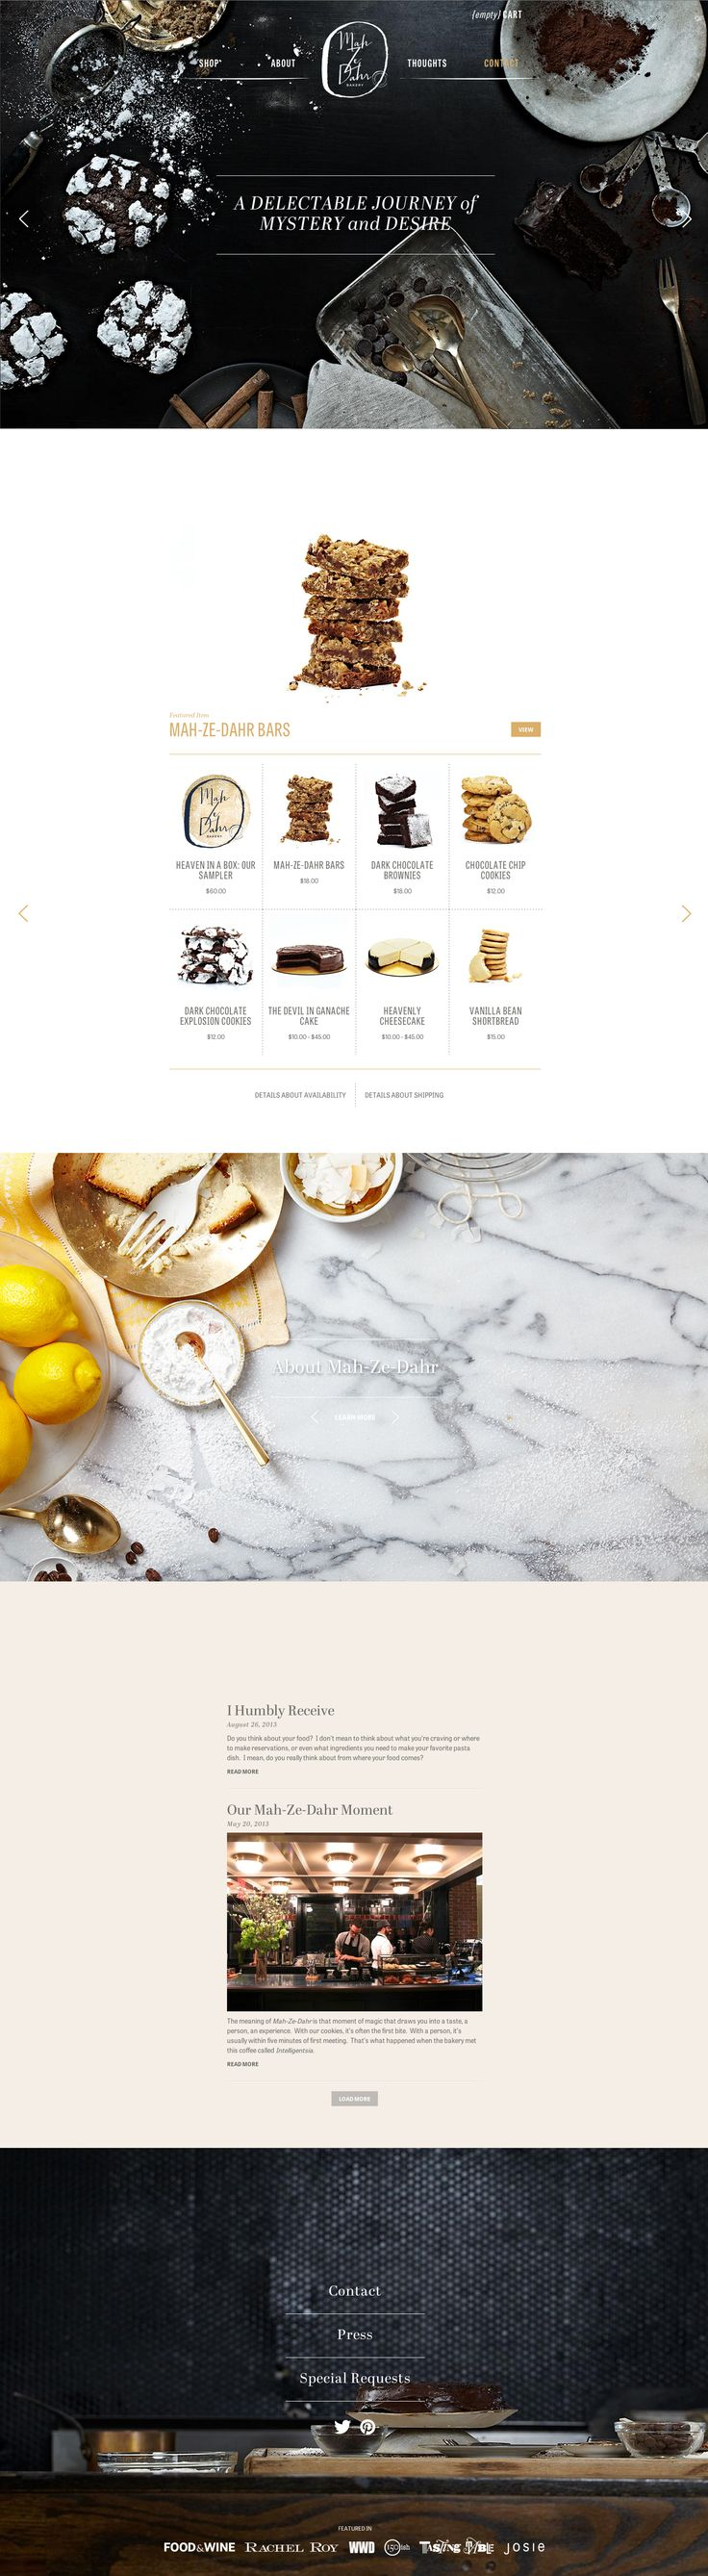 Superbe, à la fois élégant, appétissant et parfaitement hiérarchisé - Powerful single page website for Mah Ze Dahr Bakery. Design and development by W&Co.